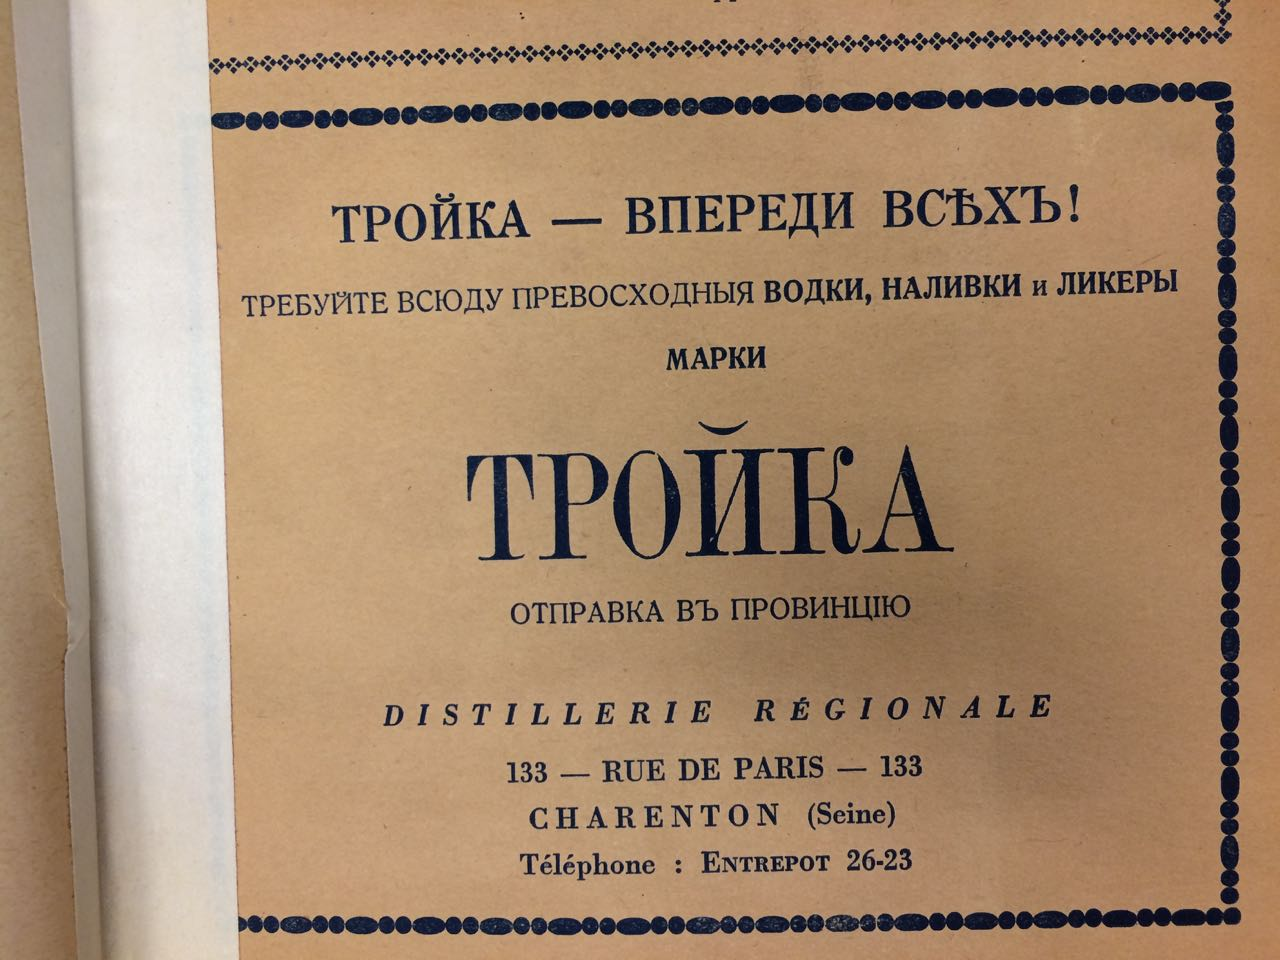 Troika Vodka